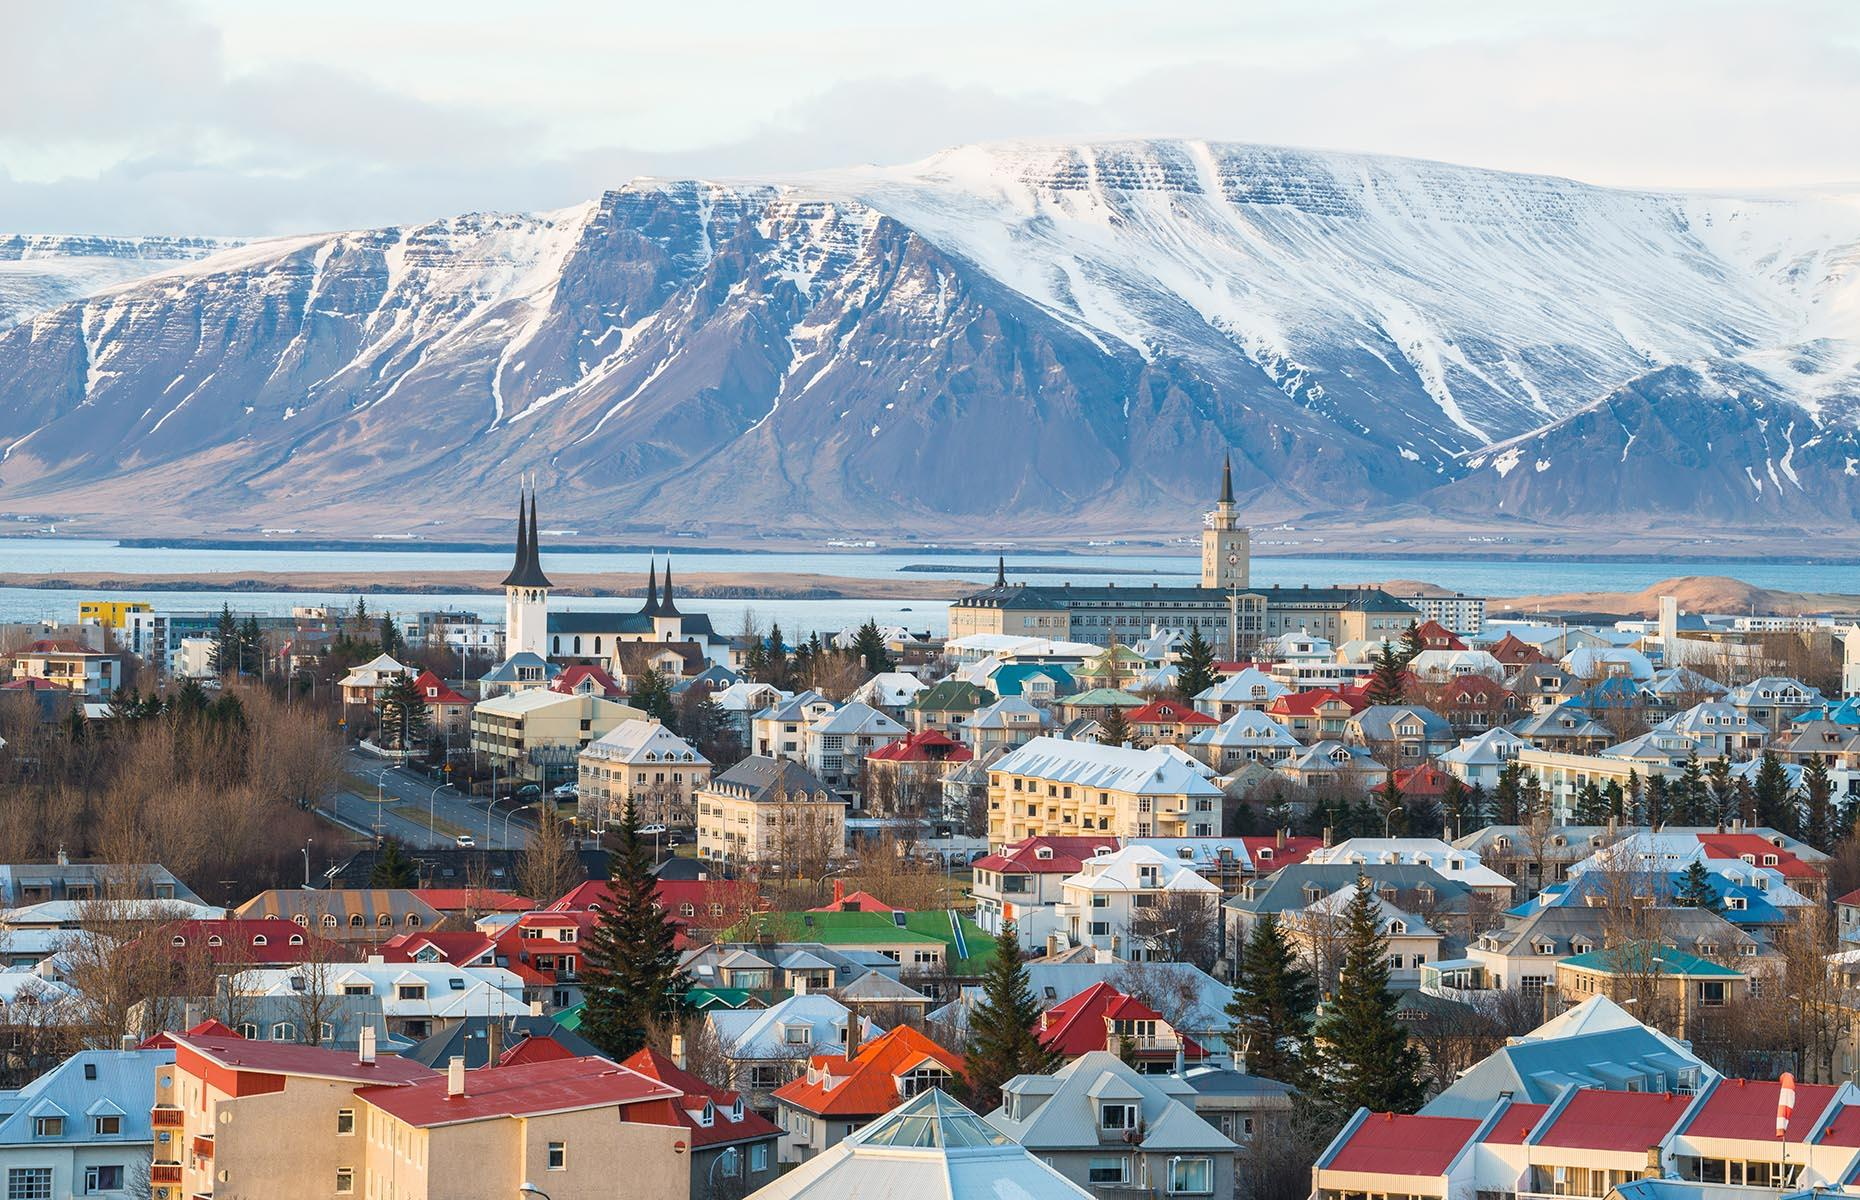 Slide 29 of 41: From its clusters of colorful houses to the sculptural drama of Hallgrímskirkja (a parish church), Reykjavík is one of a kind. Apart from its famous church, most of the city is low-rise, making Mount Esja – usually dusted with snow well into the warmer months – an even more impressive presence across the water.